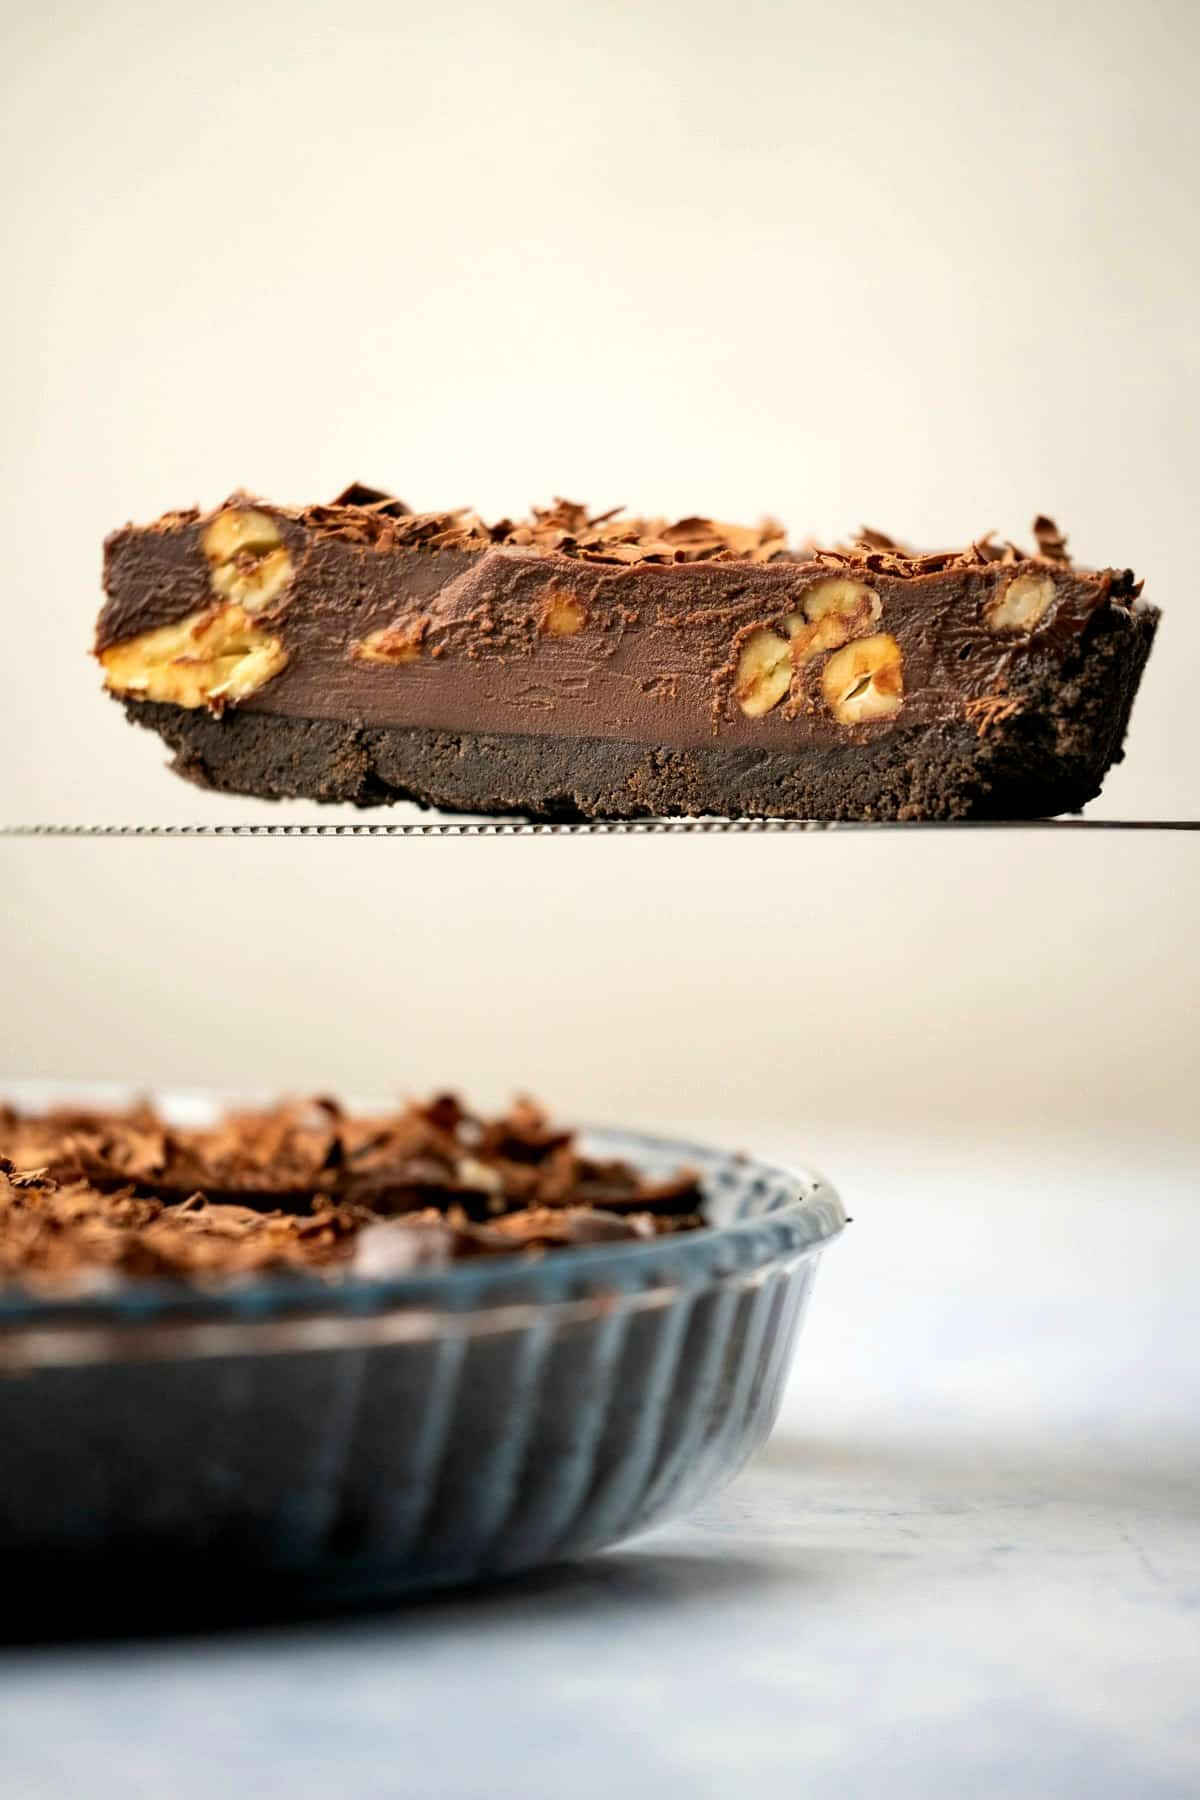 Slice of chocolate tart on a pie lifter.